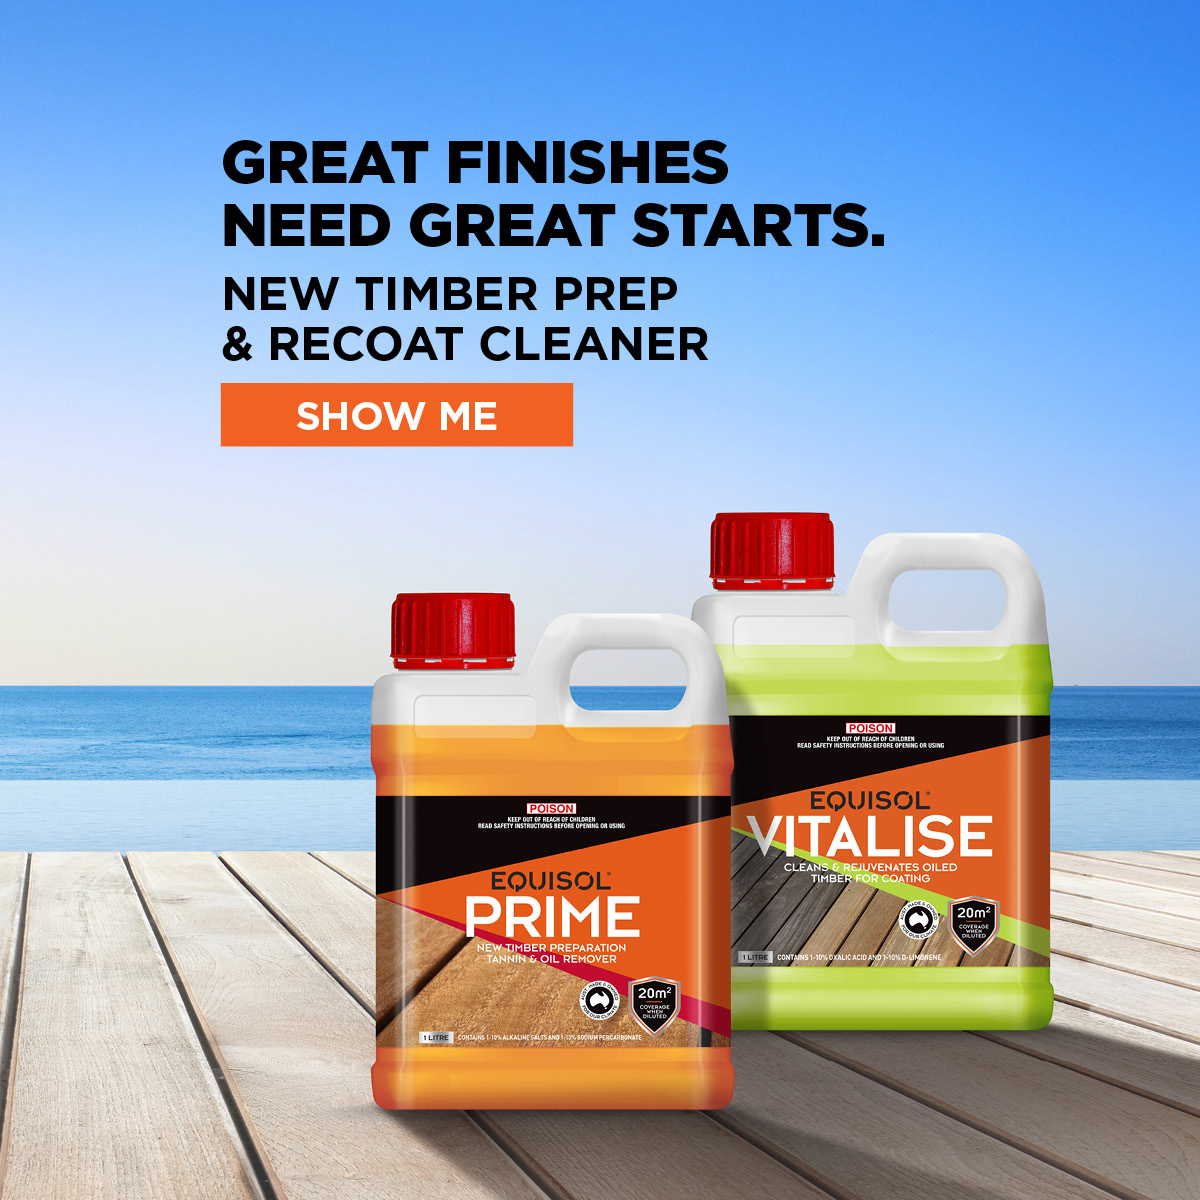 Great finishes need great starts